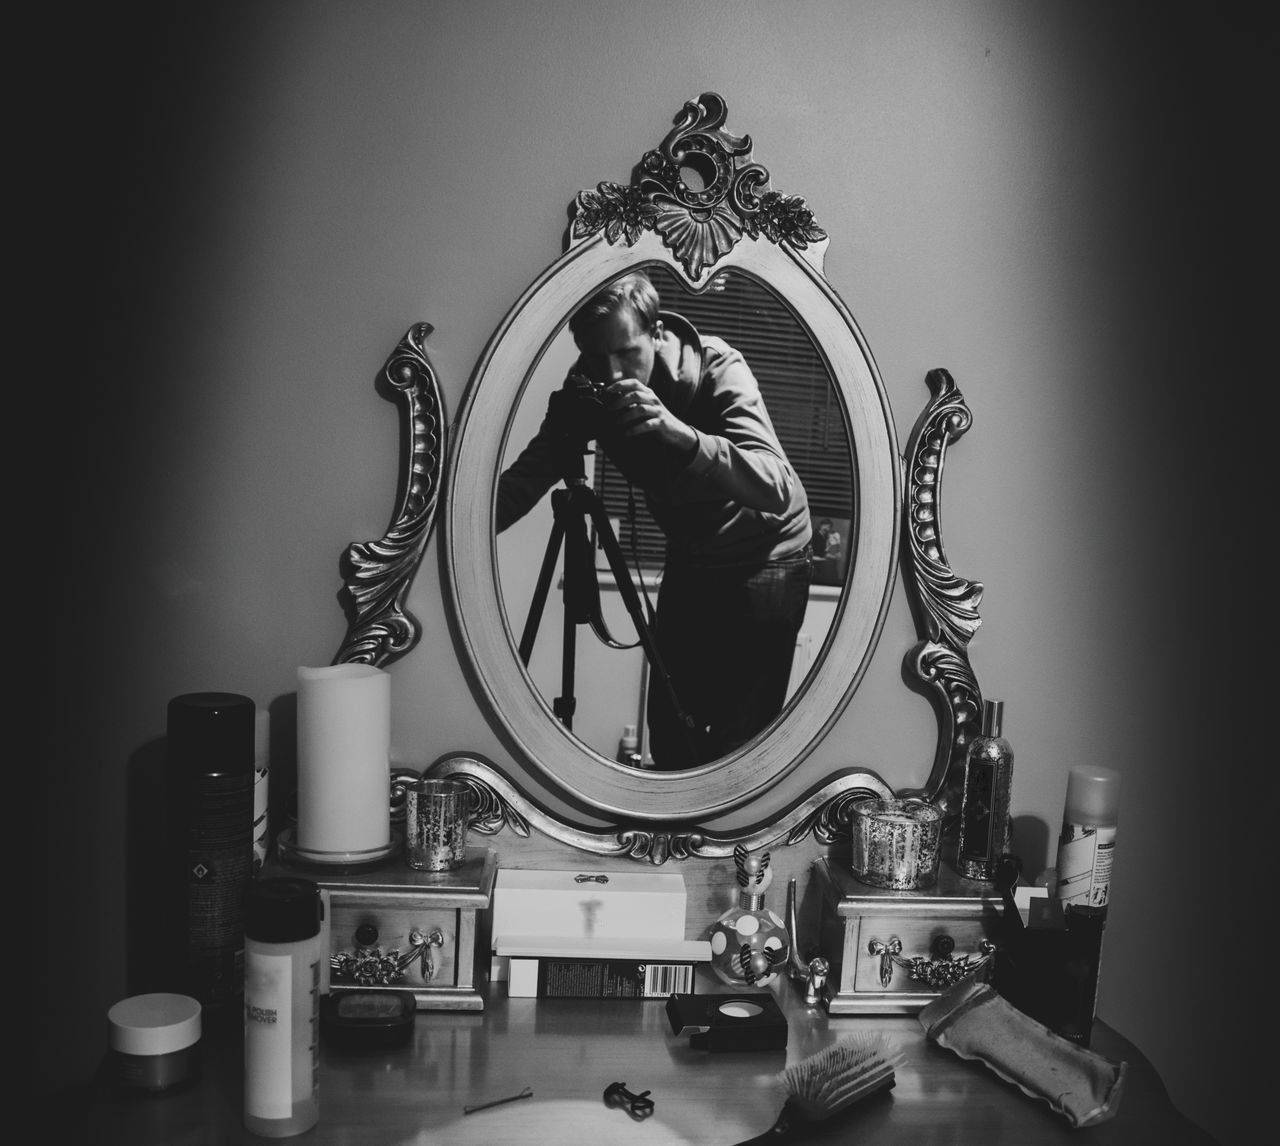 Blackandwhite Clutter Dressing Room Dressing Table Indoors  Makeup Mirror Mirror Picture Mirror Reflection Mirrorless Mirrorselfie Monochrome Old-fashioned Photographer Reflecion Self Portrait Self Portrait Experiments Vanity